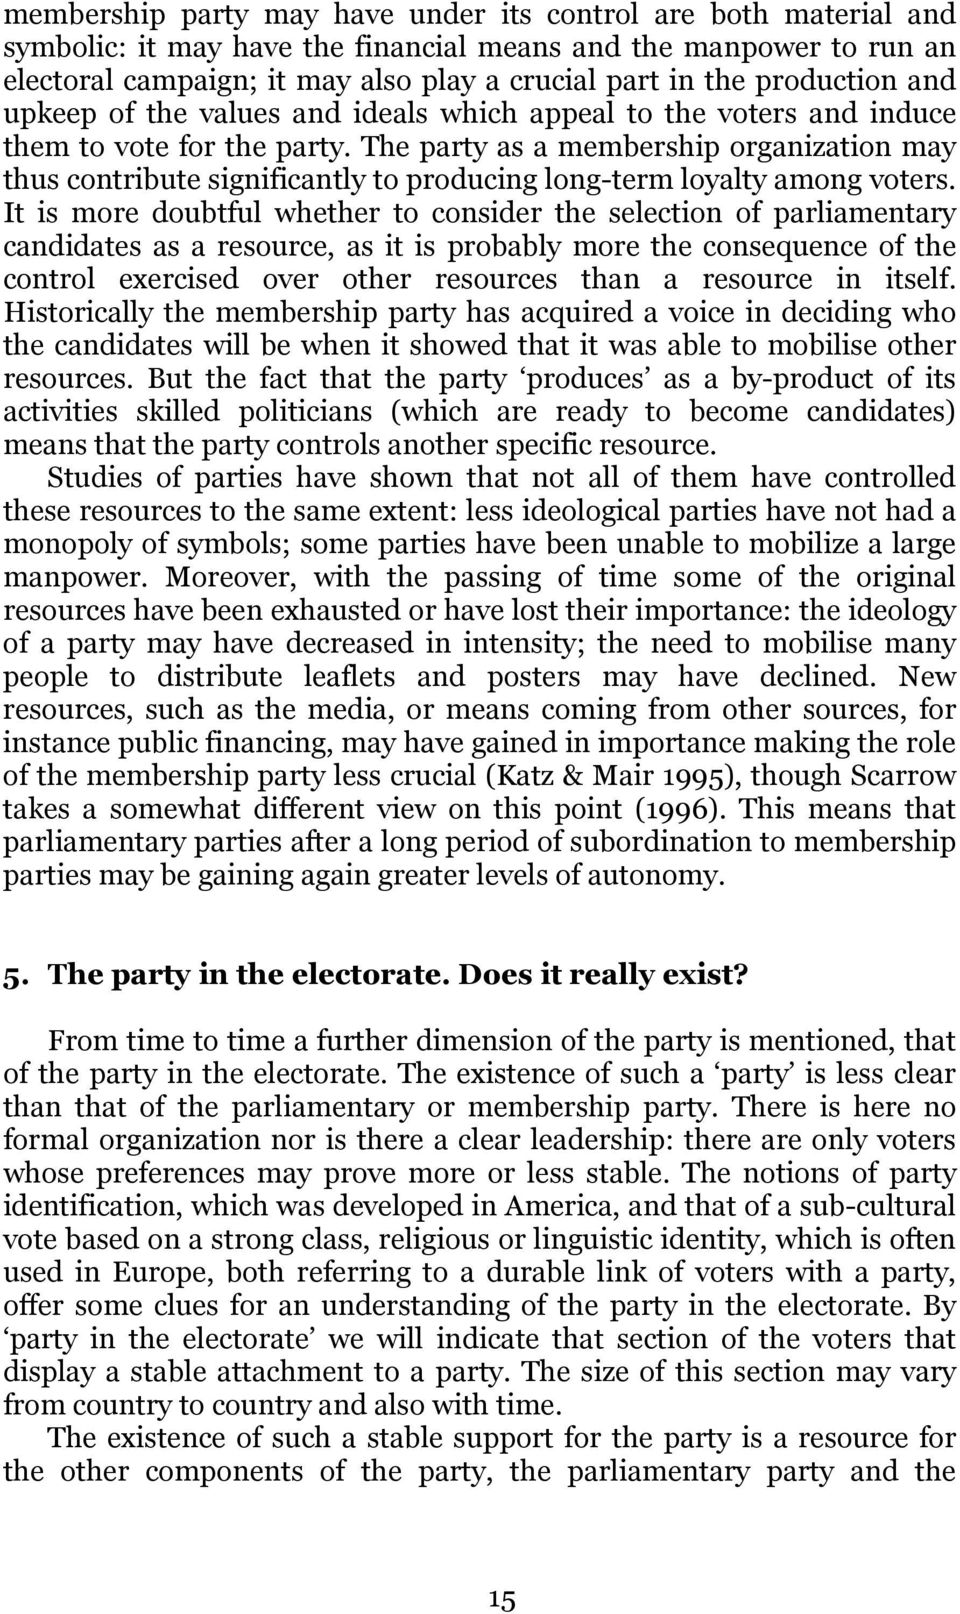 The party as a membership organization may thus contribute significantly to producing long-term loyalty among voters.